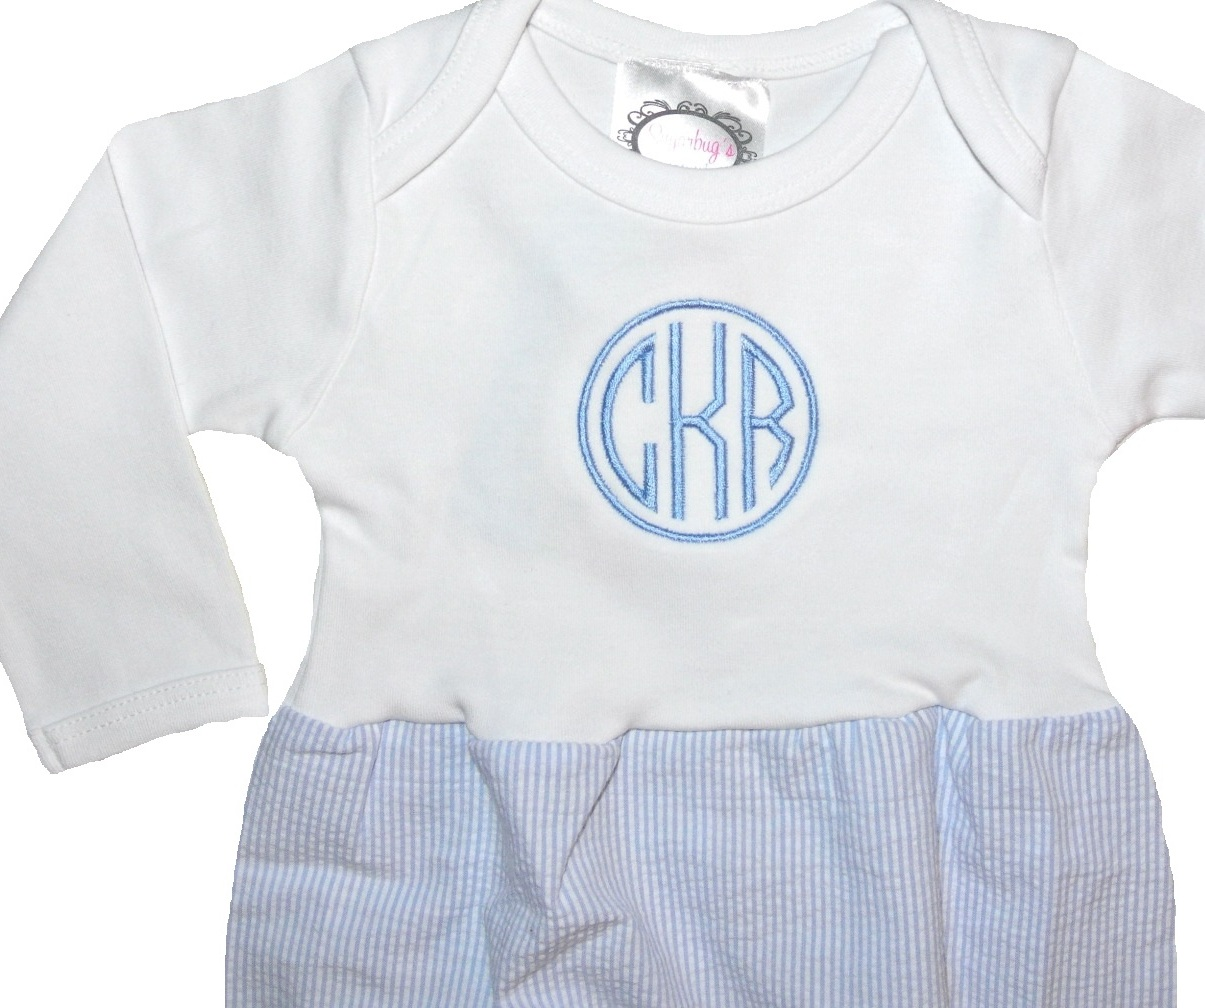 3c3da2a649a51 Personalized Baby Infant Boy's Gown in Blue Seersucker